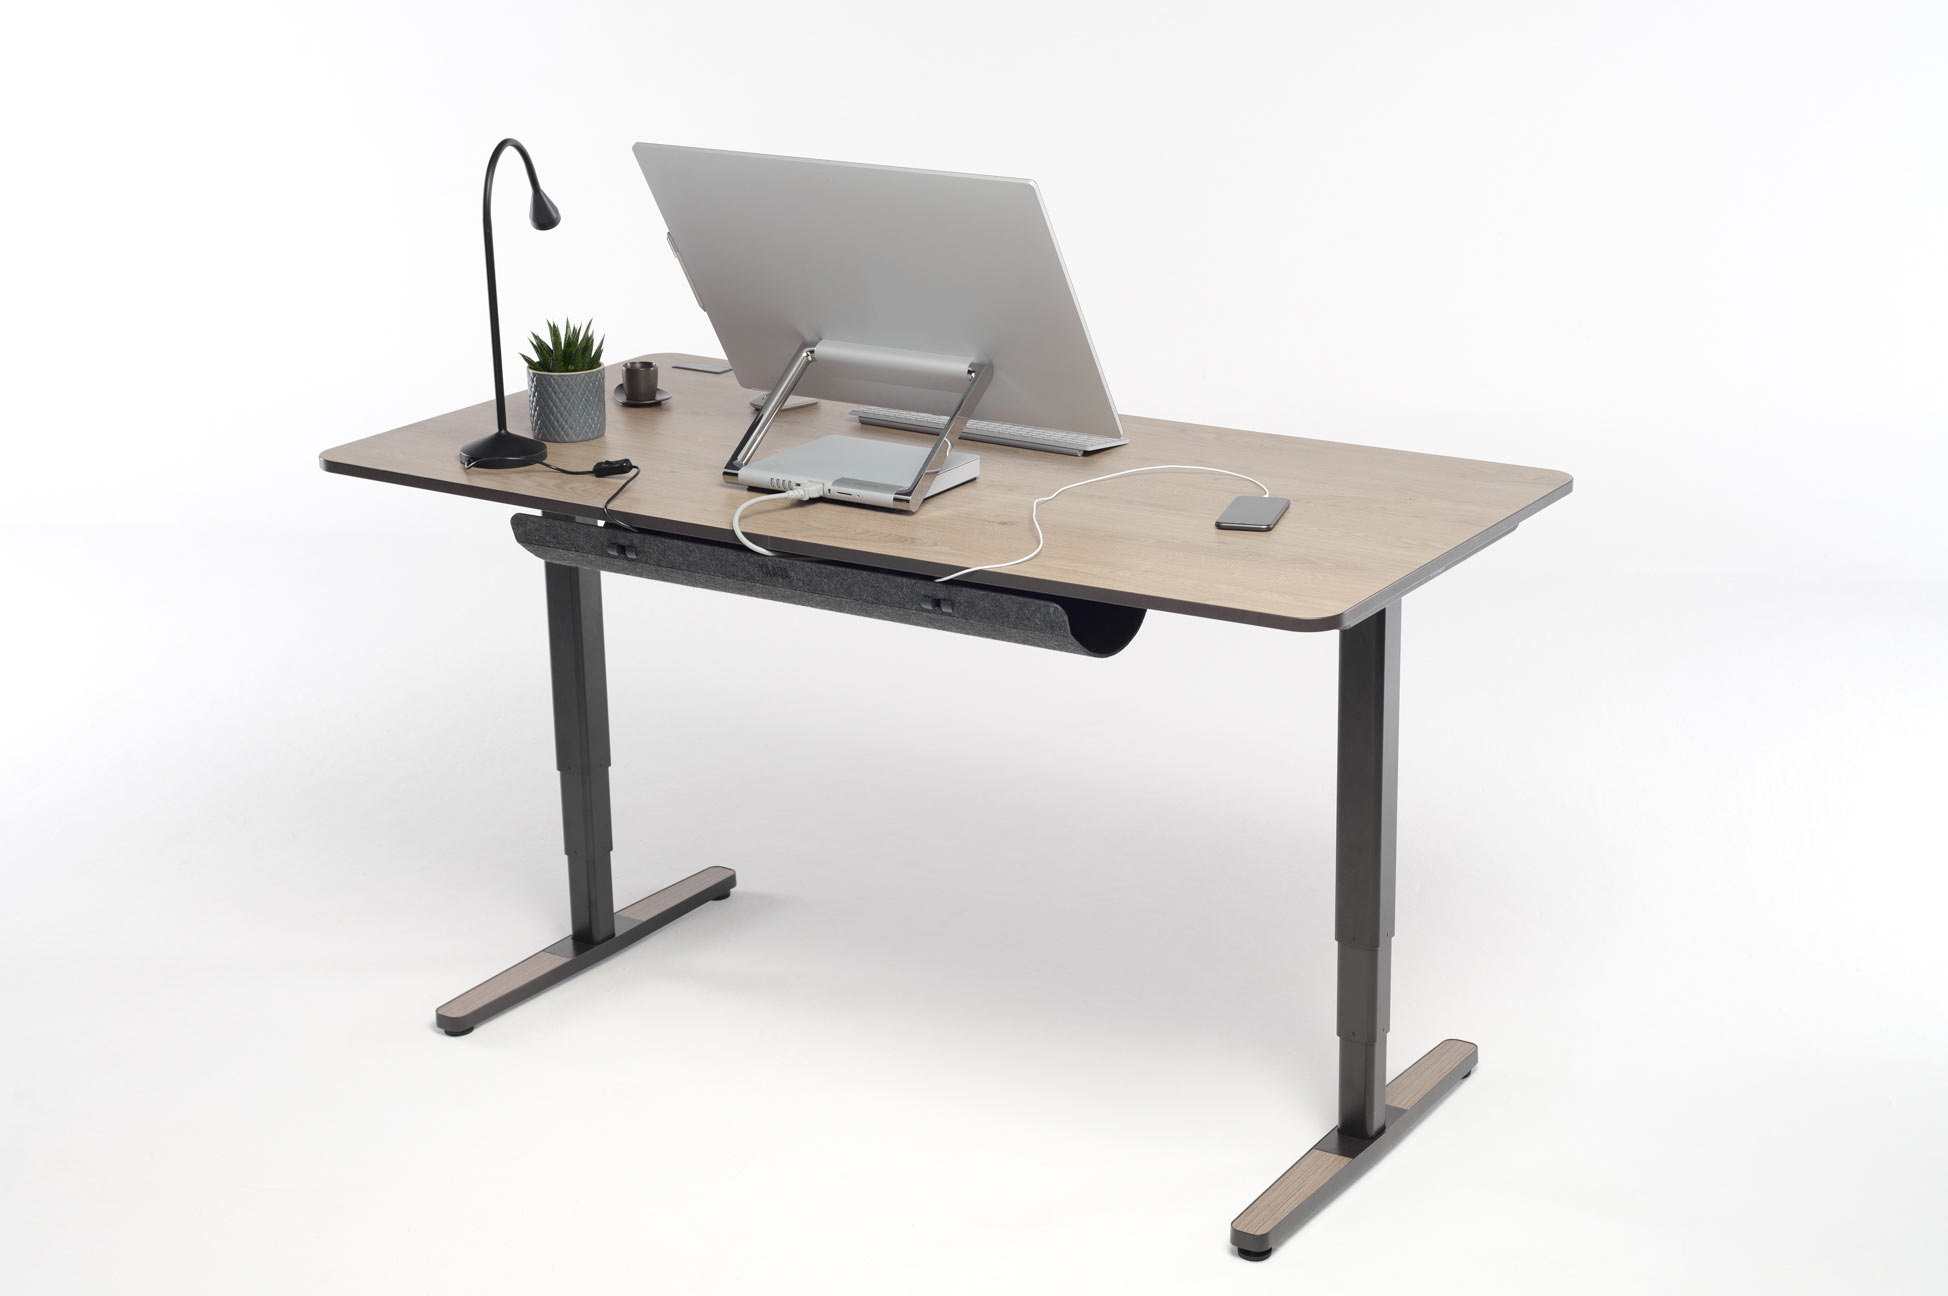 The Yaasa Desk Pro II is a highlight in every office due to its modern design and various smart functions.